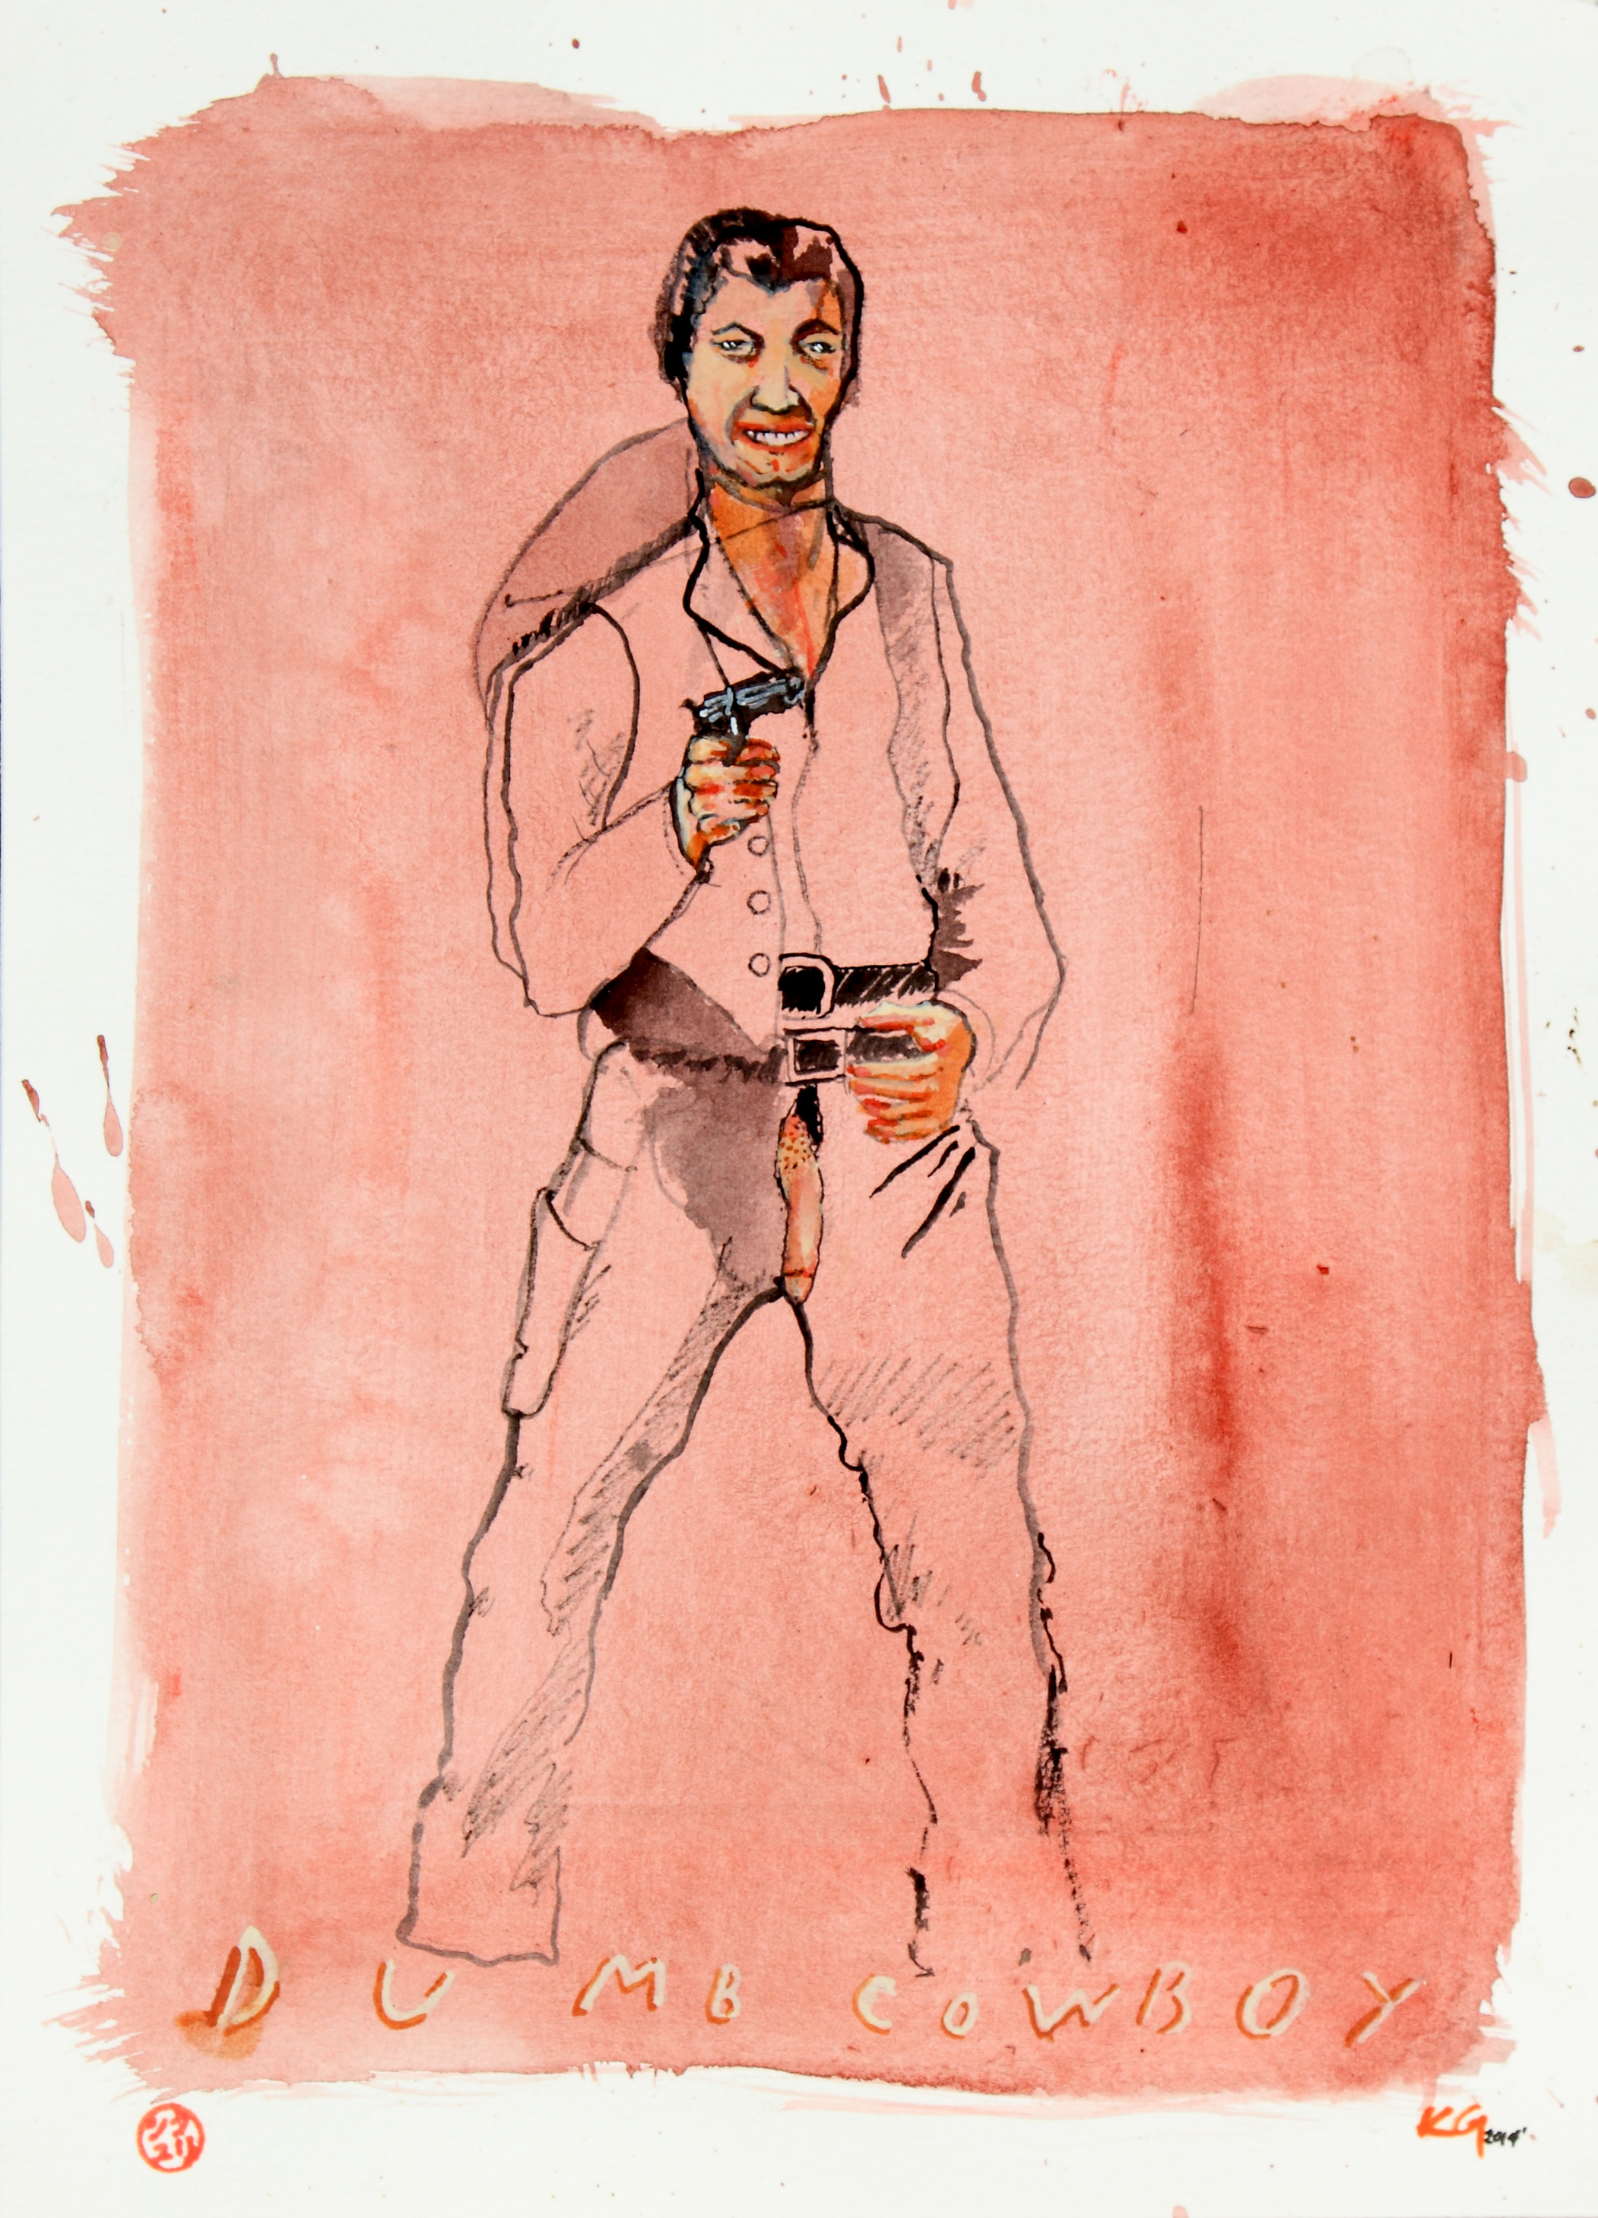 Dumb Cowboy,   2014   Acrylic on paper   9 1/2 x 12 1/2 in.